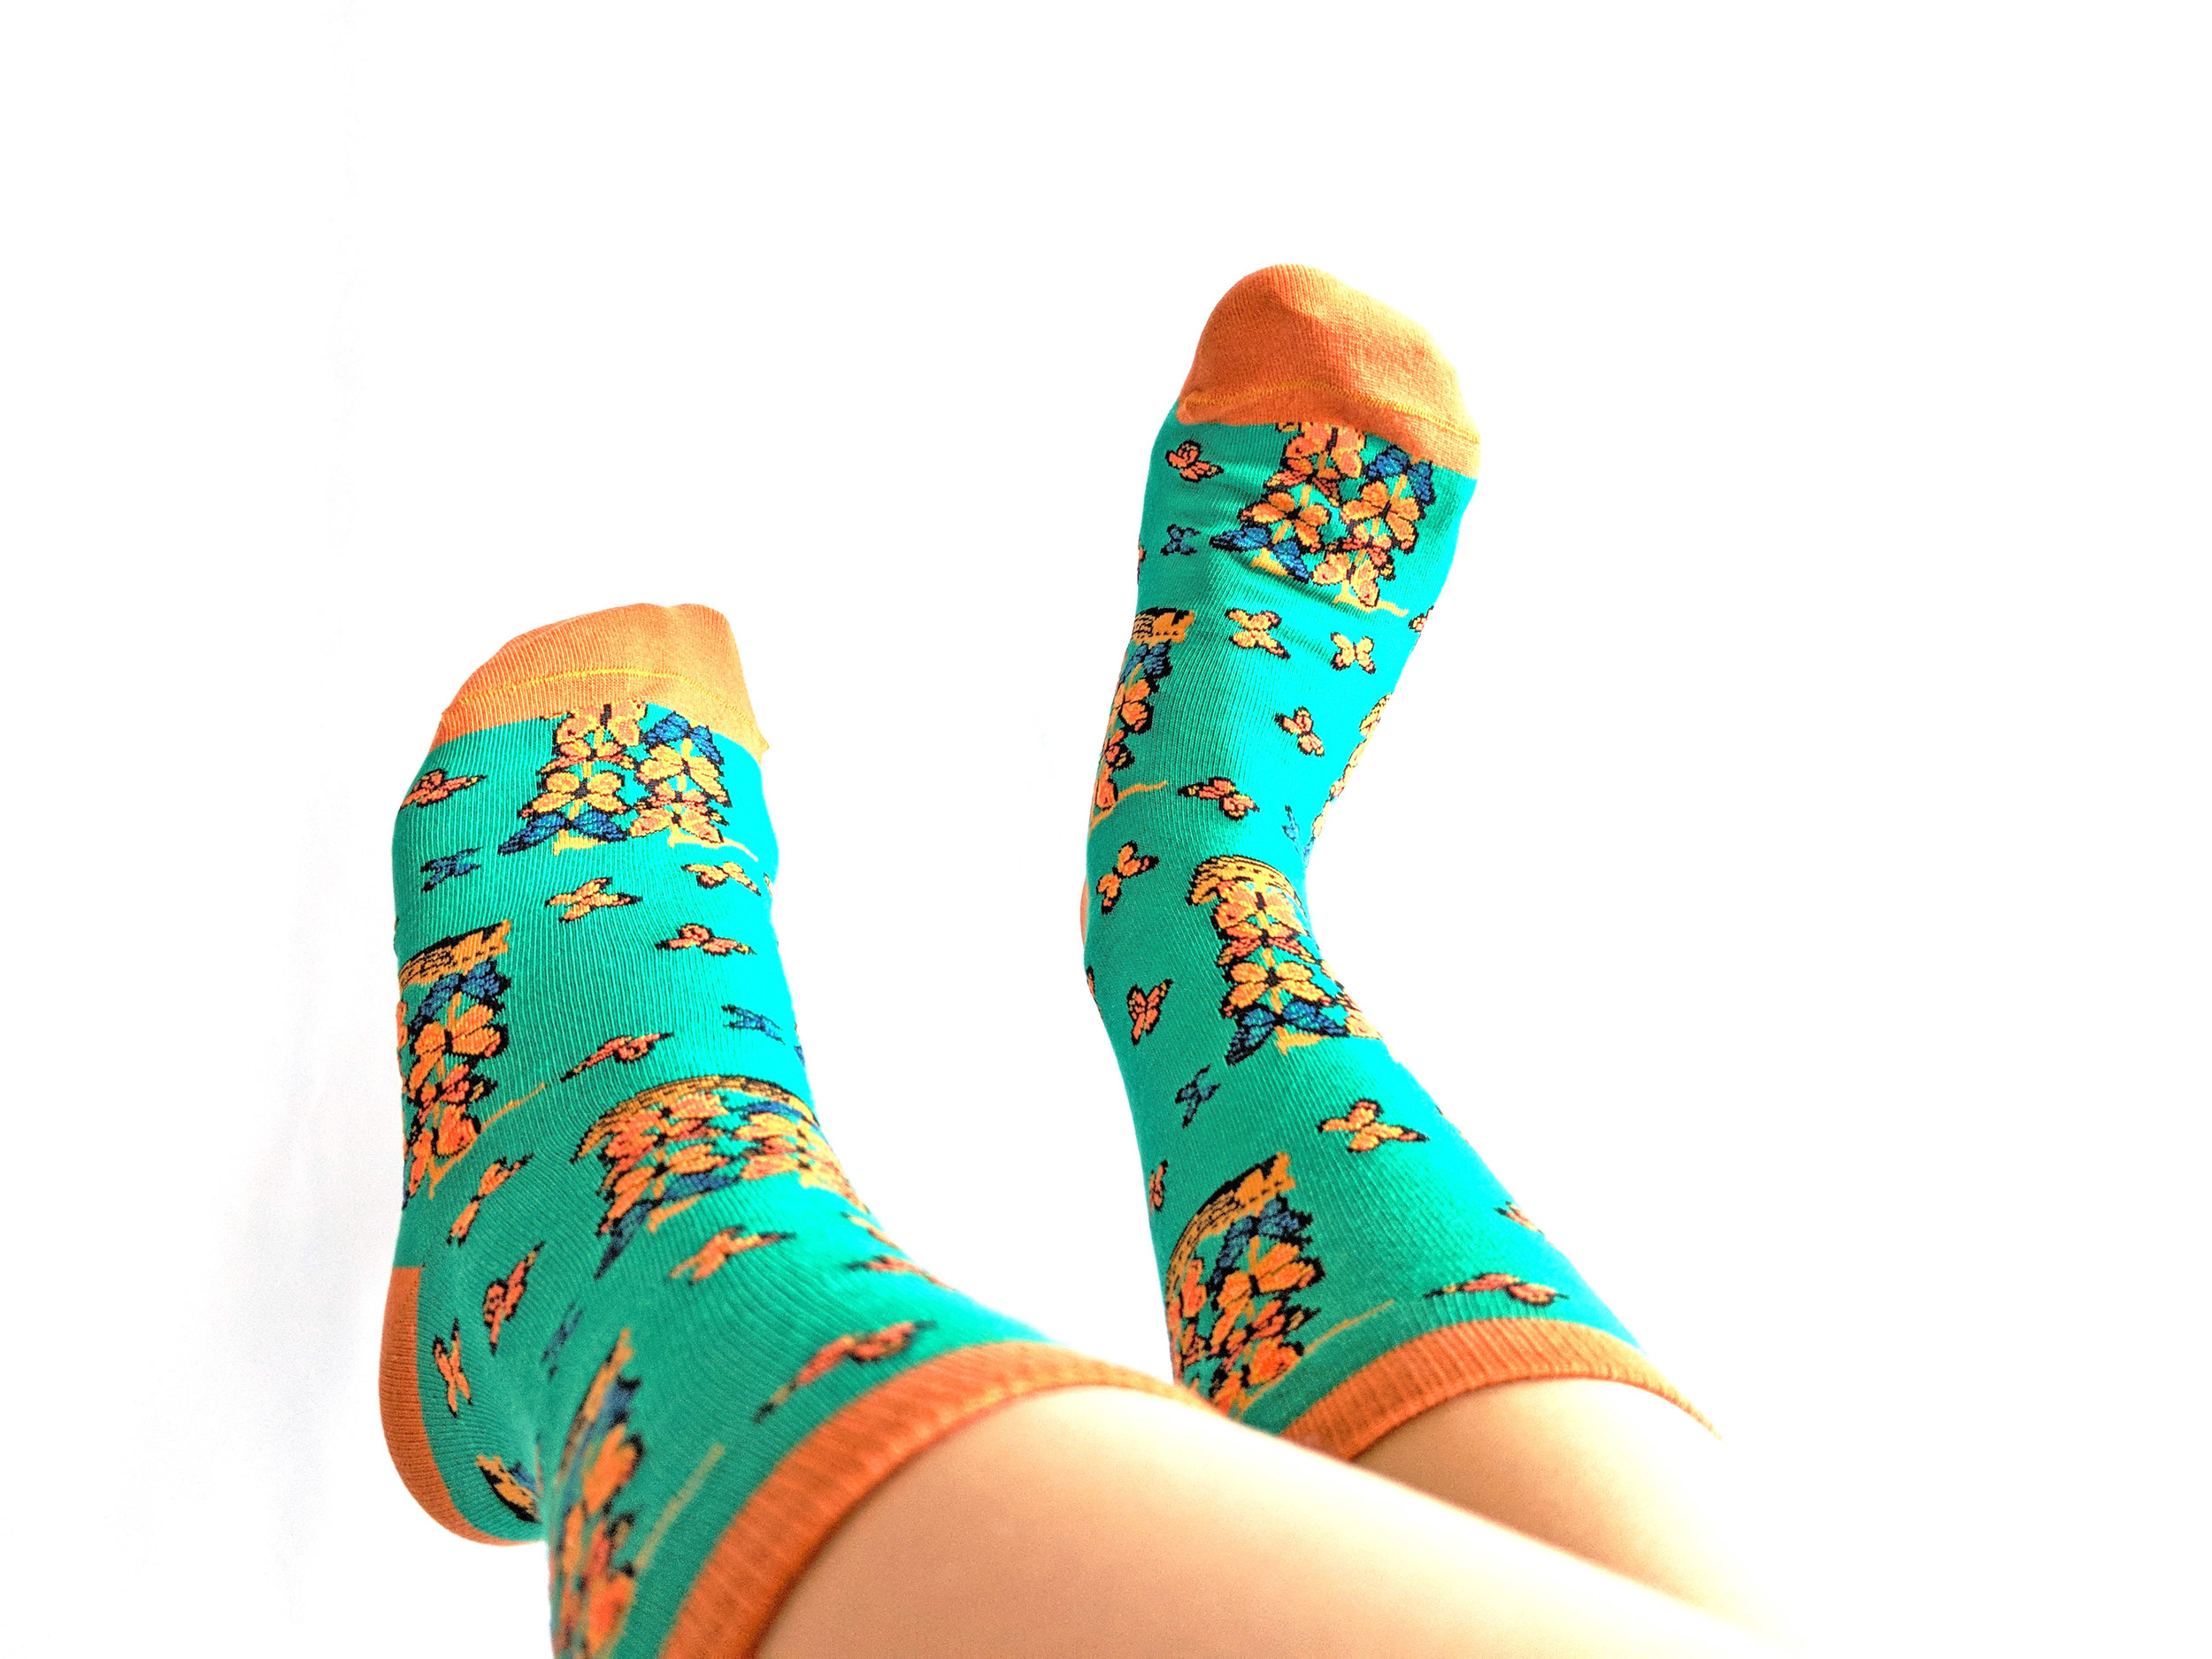 Inspired by  Ship with Butterfly Sail s by Salvador Dali, socks by Imagery Socks - Photo Credit: The Sock Review